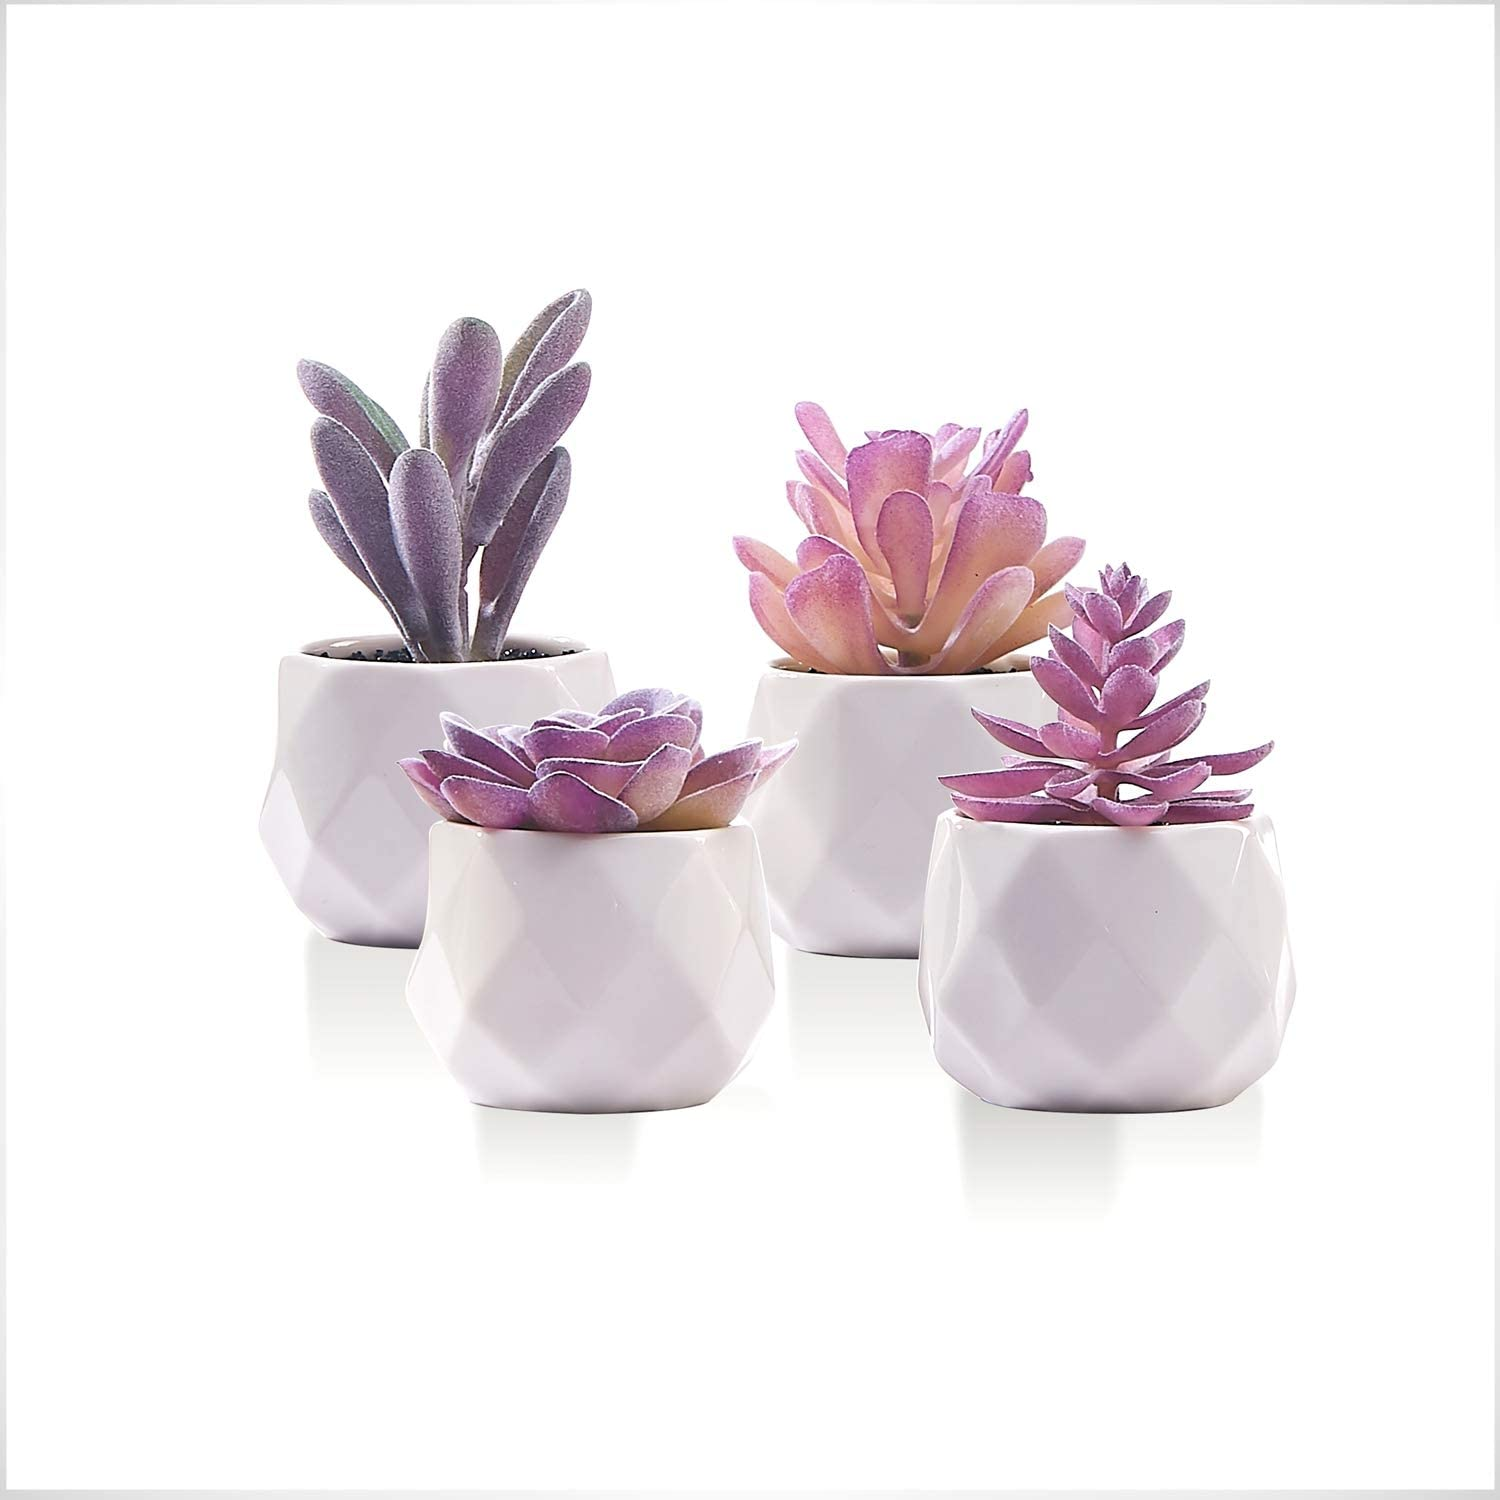 CADNLY Fake Succulent Plant Set - Artificial Succulent Plants for Women Desk - Realistic Faux Succulents in Ceramic Planter Pots - Mini Purple Succulent Decor for Bedroom Bathroom Bookshelf Office